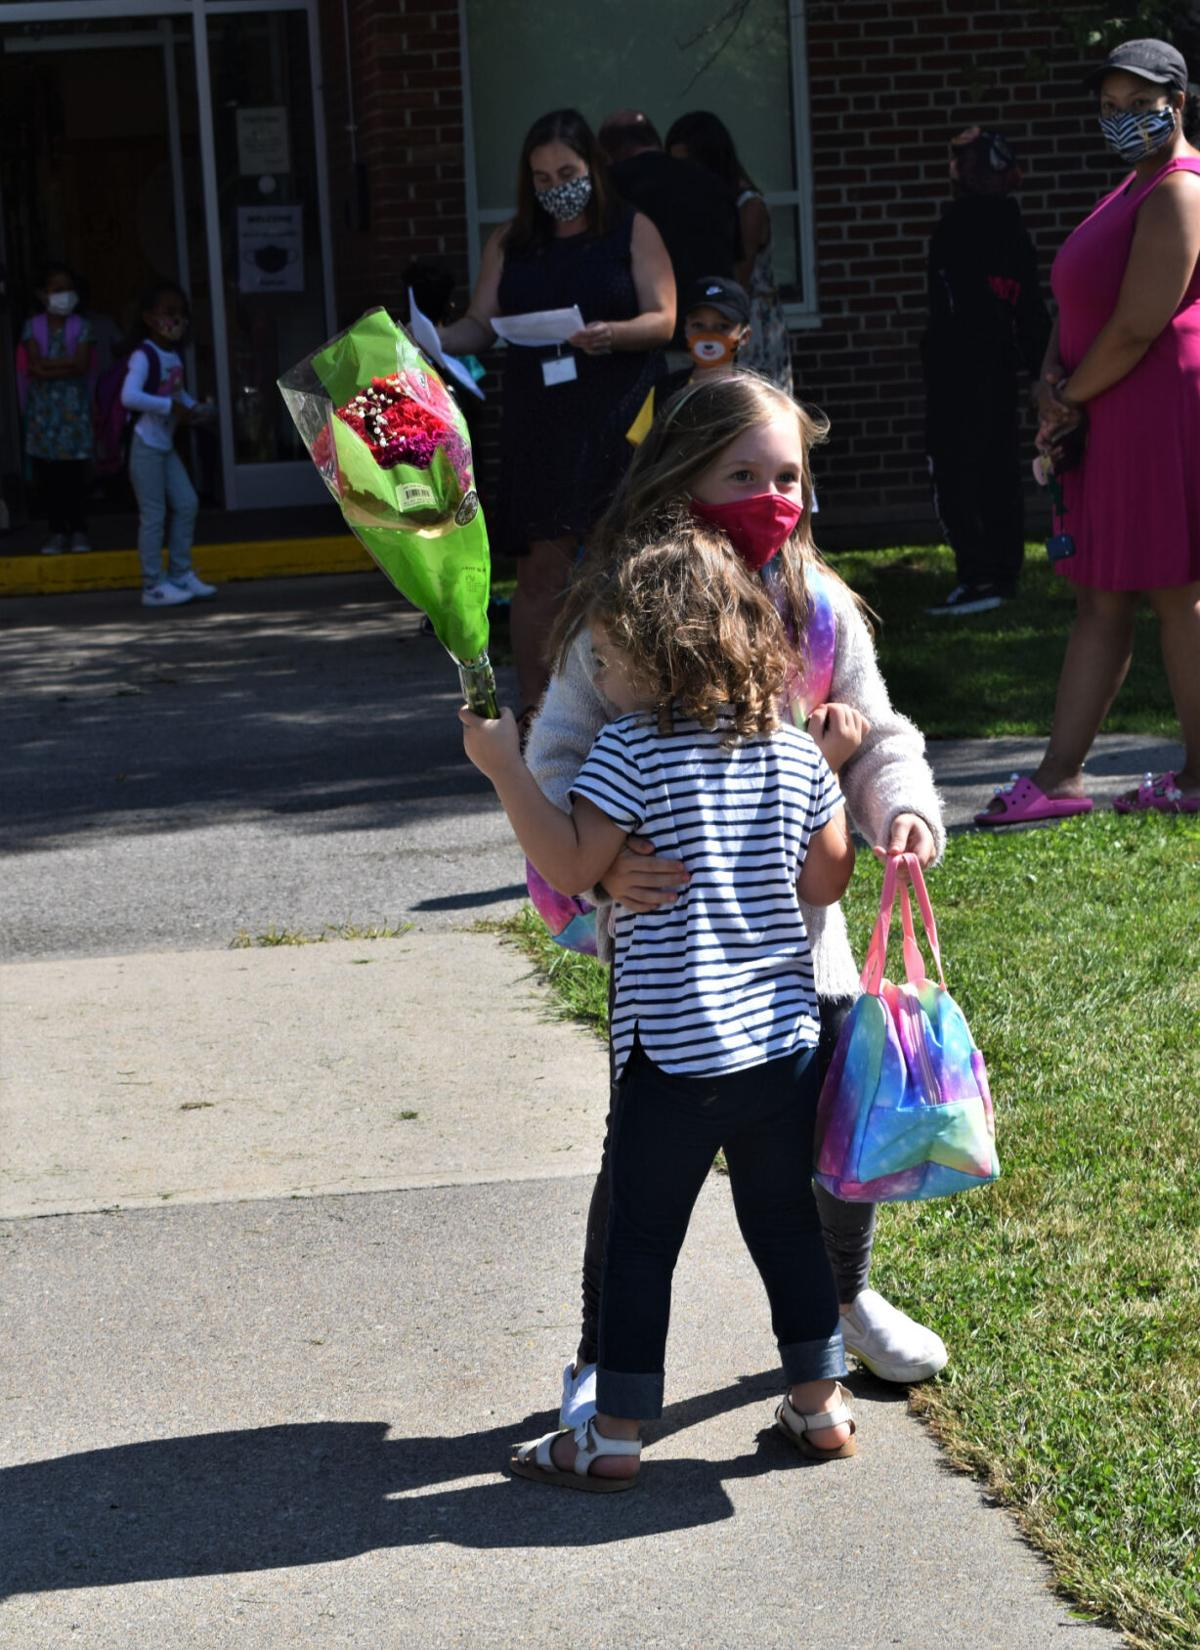 Schools welcome students back to classrooms